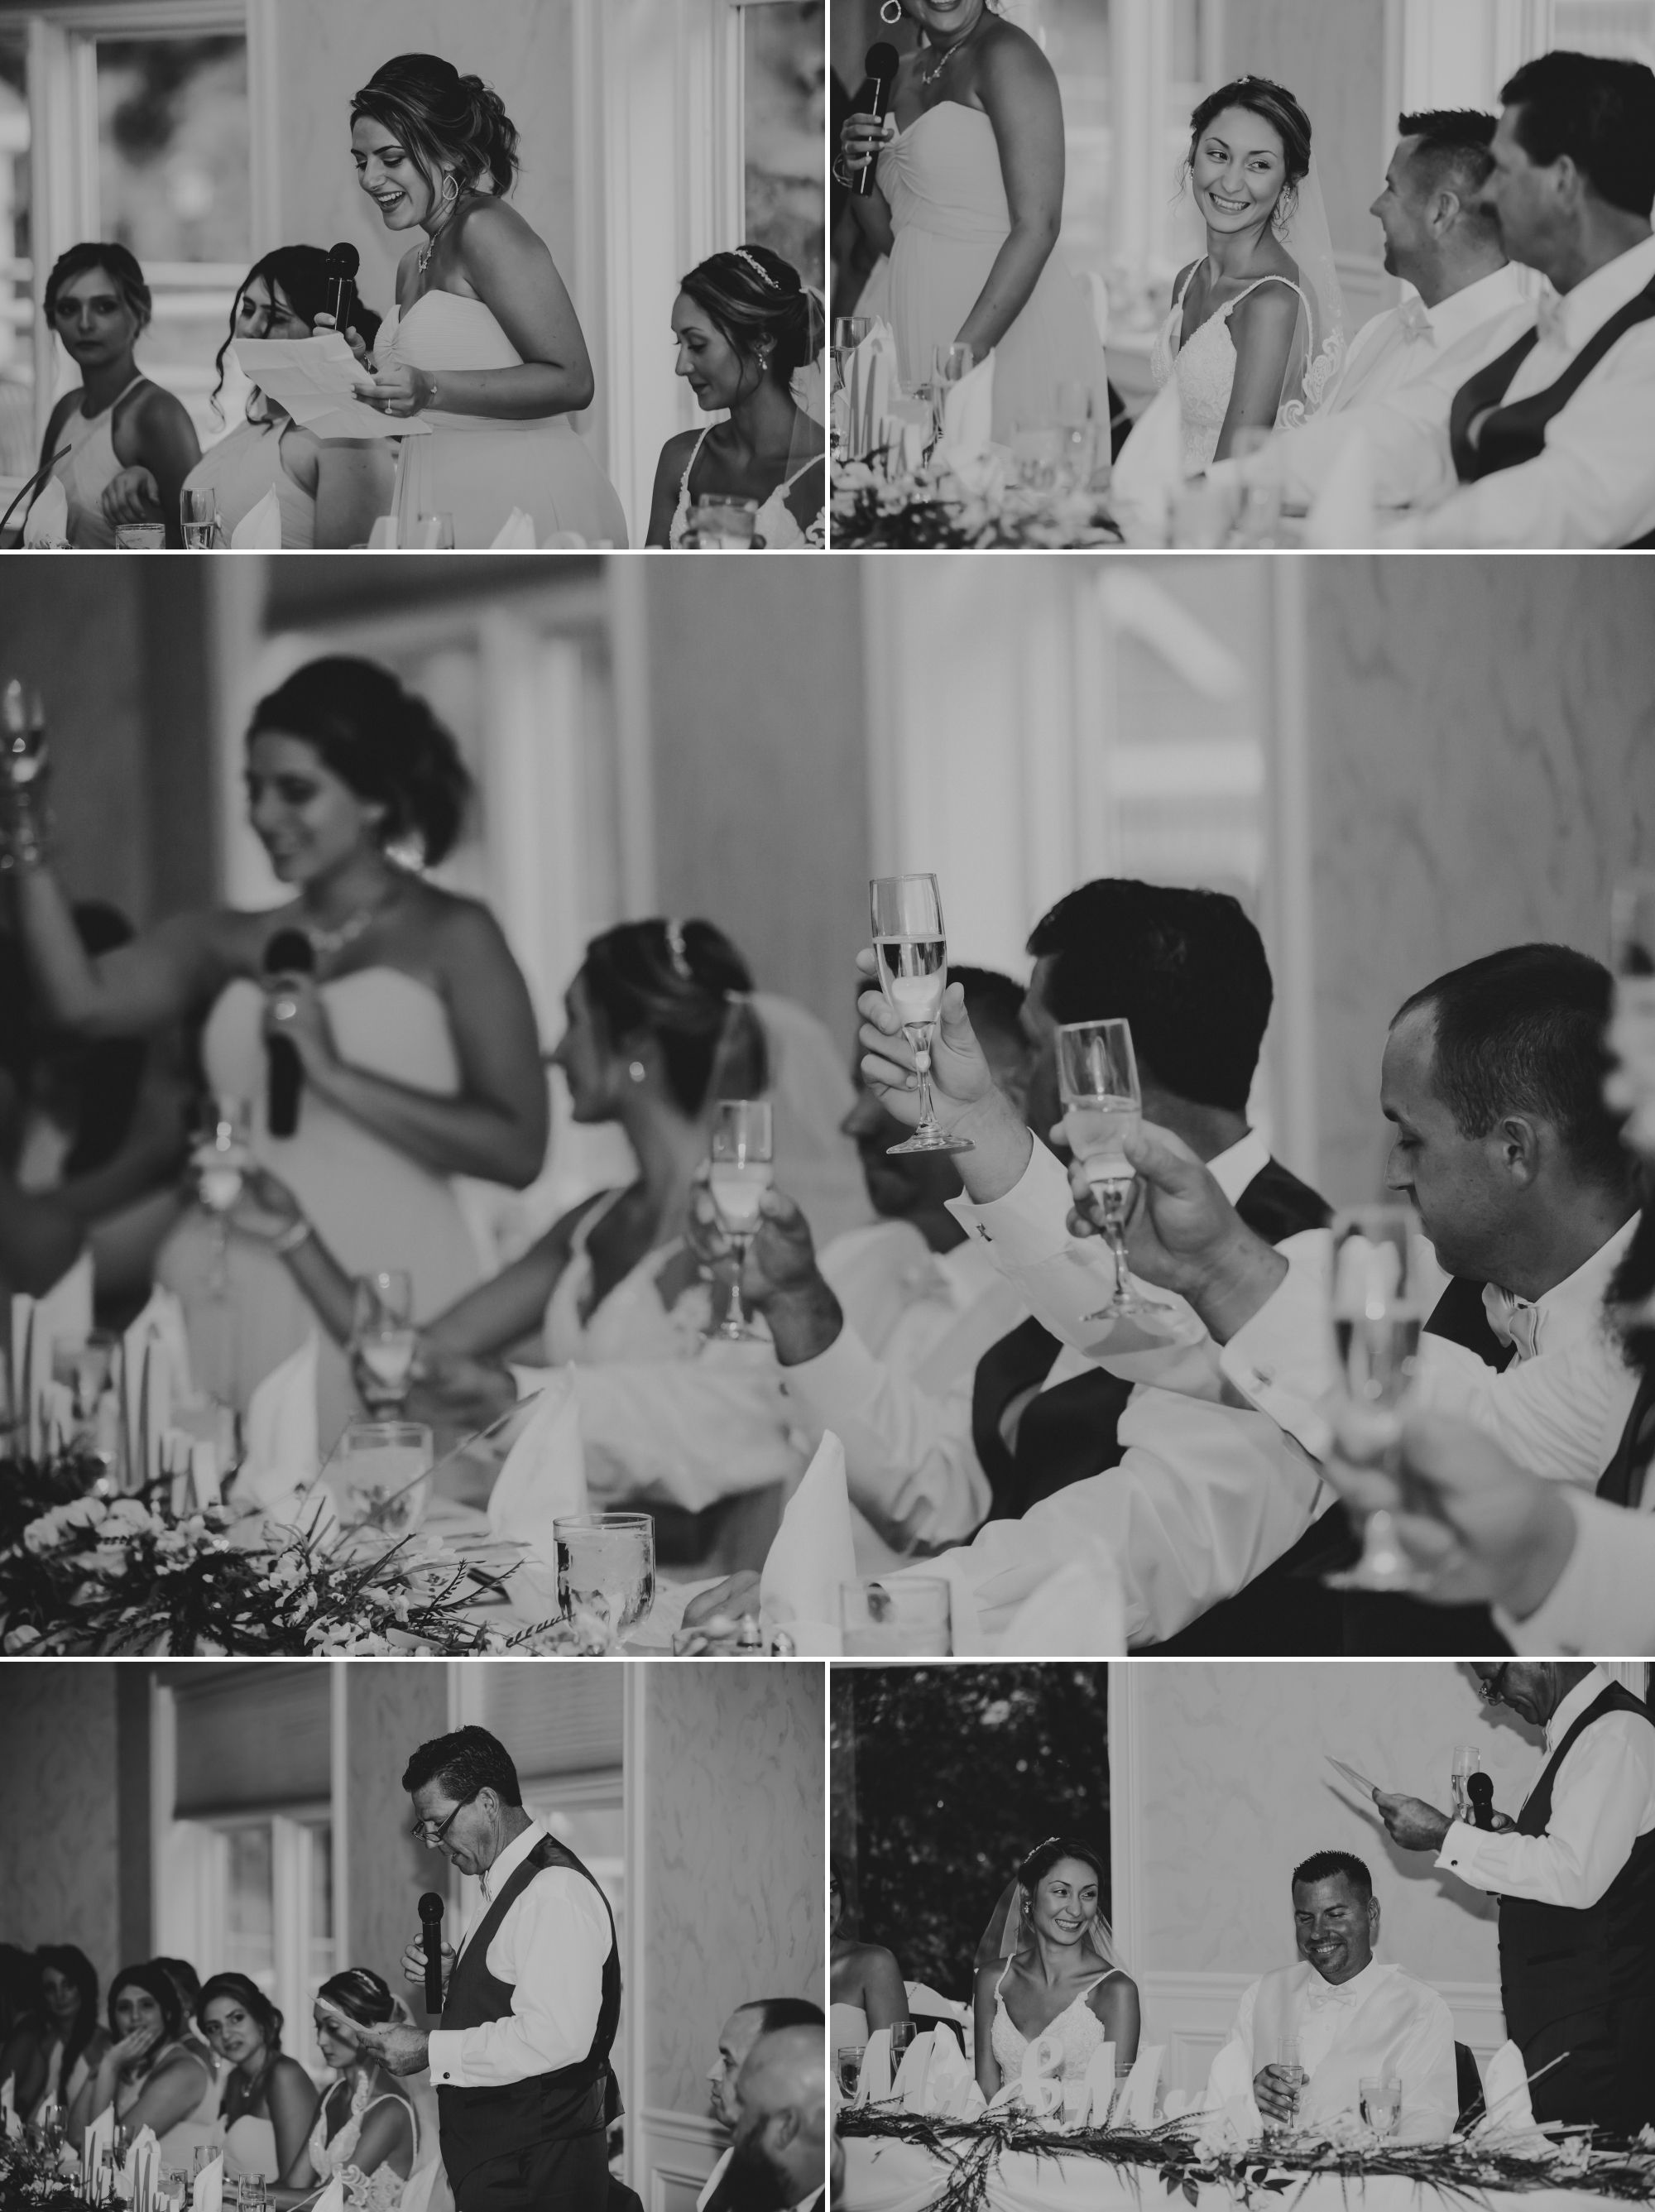 Black and white photo collage of the toasts being given at the wedding reception.